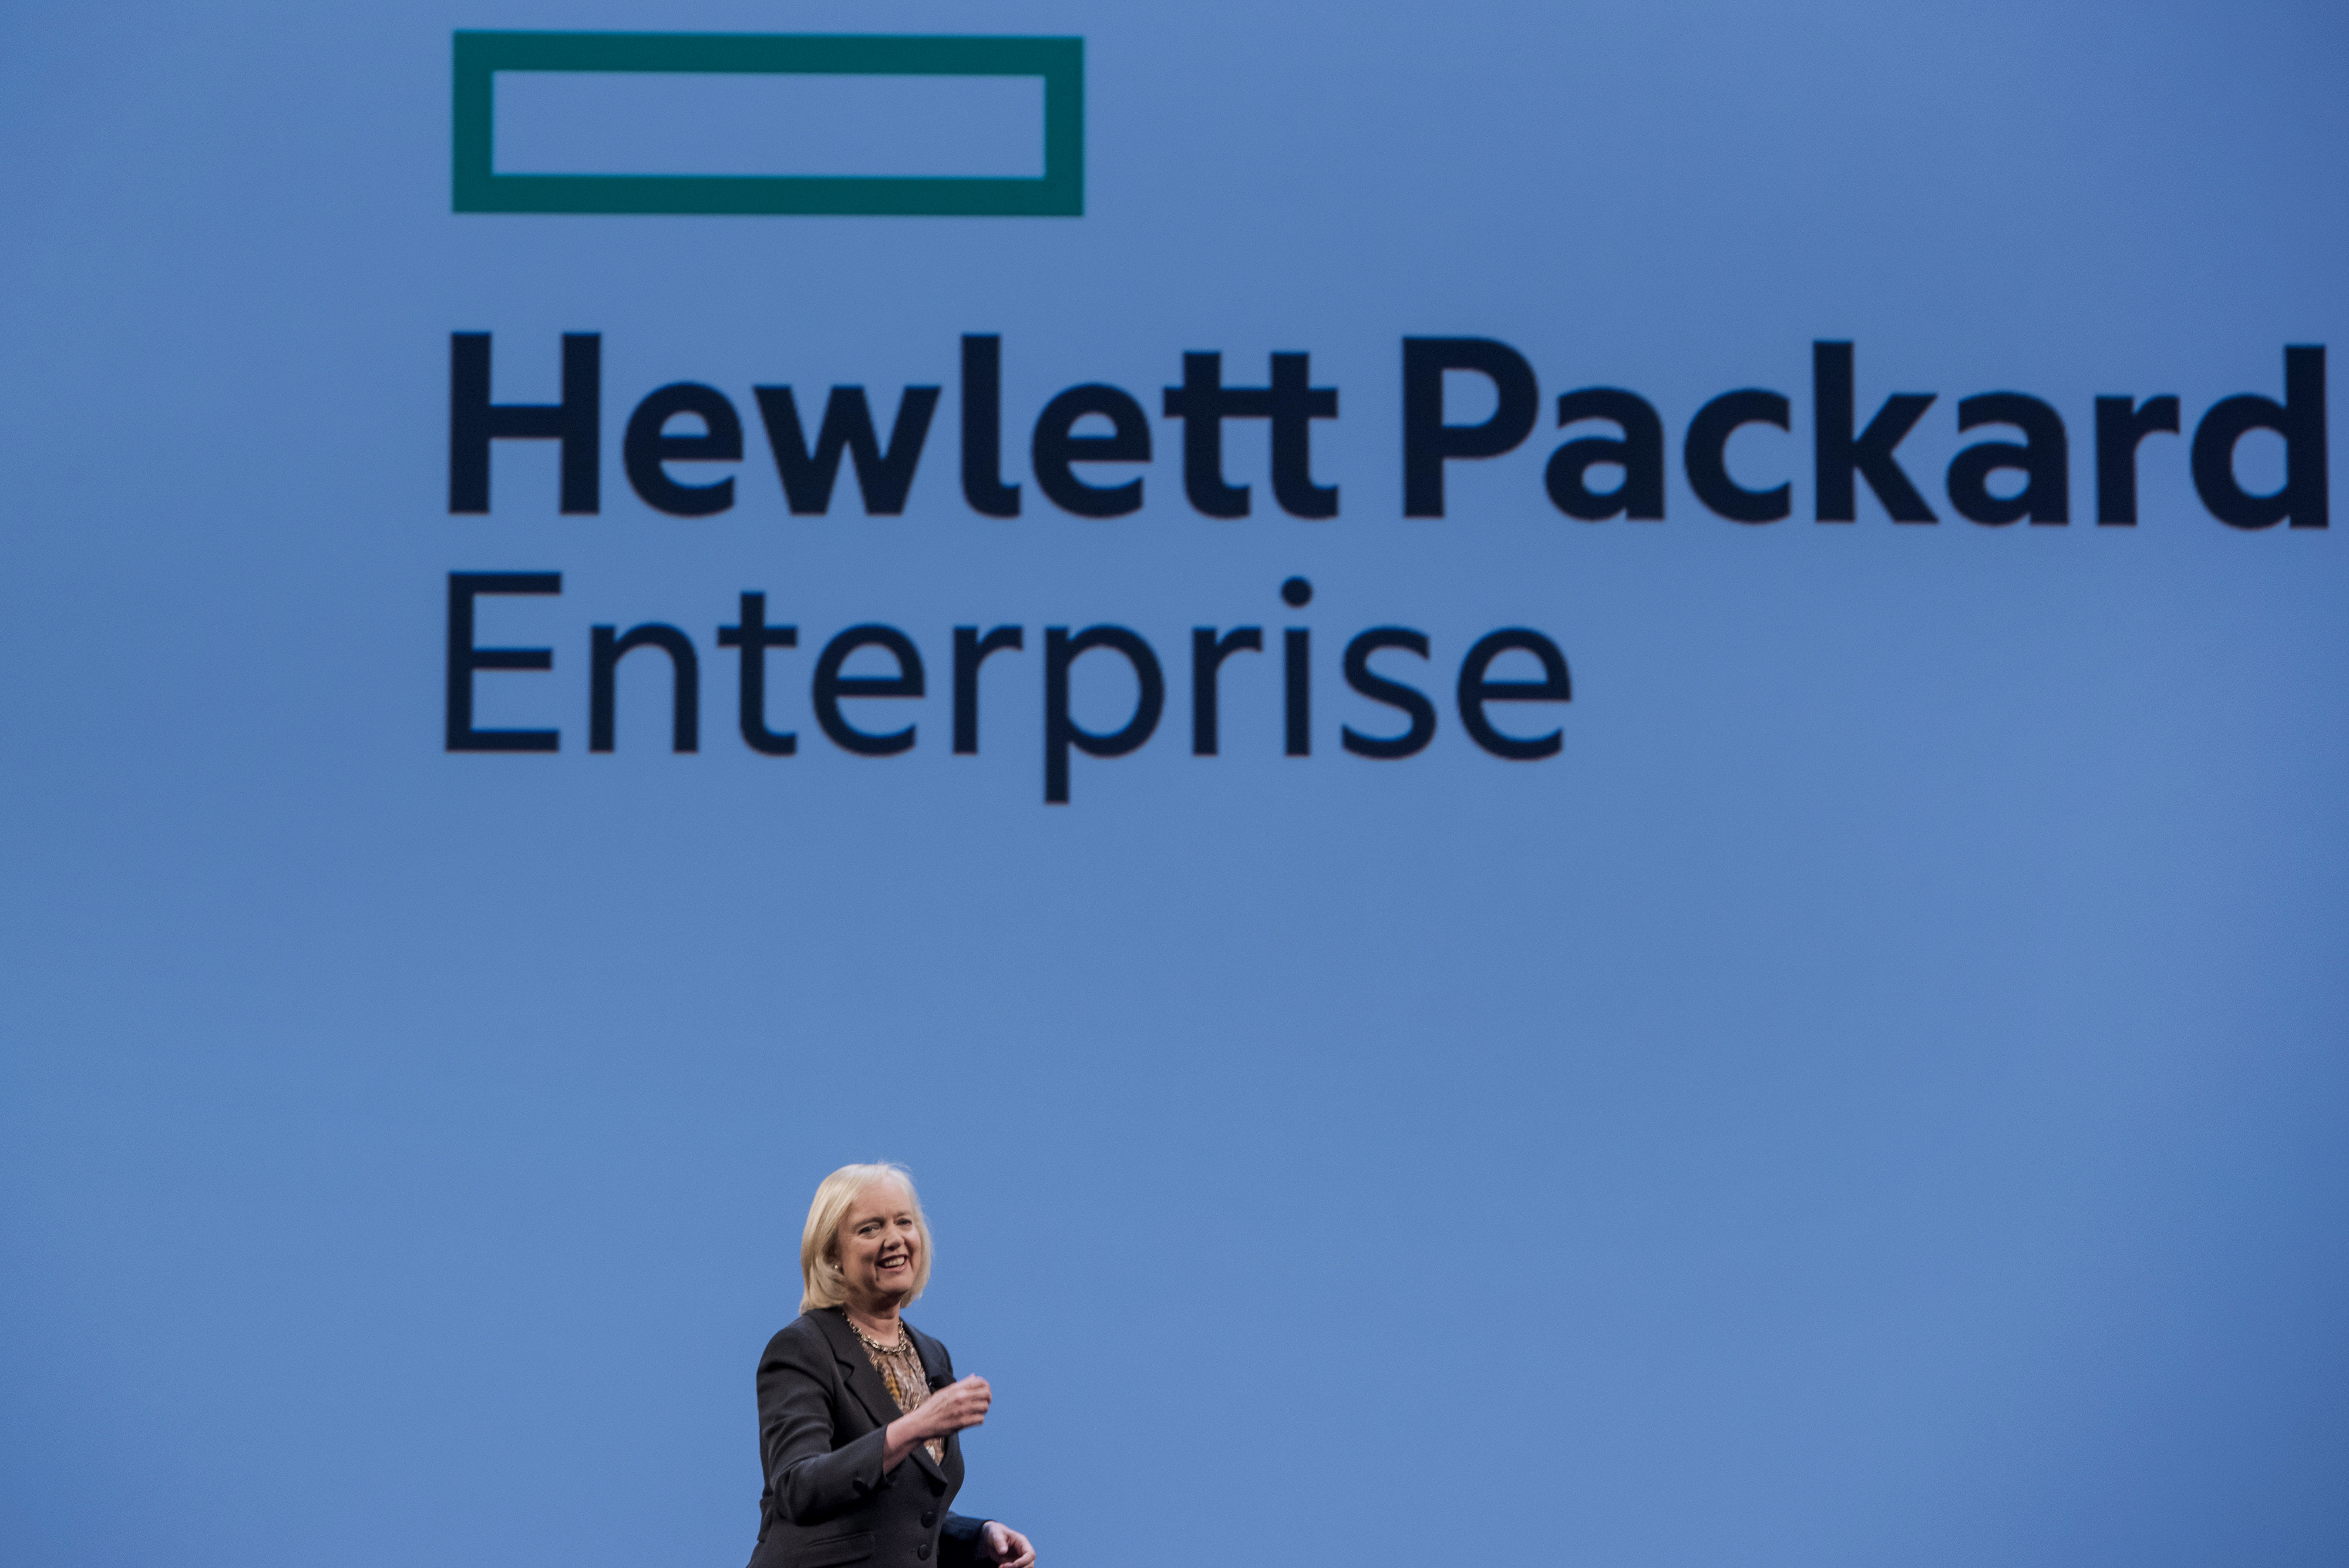 Meg Whitman, chief executive officer of Hewlett-Packard Co., speaks with the new Hewlett Packard Enterprise logo on the screen, during the HP Discover 2015 conference in Las Vegas, Nevada, U.S., on Tuesday, June 2, 2015. Hewlett-Packard Co. reported fiscal second-quarter profit that exceeded analysts' estimates as corporate spending on servers picked up ahead of the computer maker's planned separation into two companies. Photographer: David Paul Morris *** Local Caption *** Meg Whitman